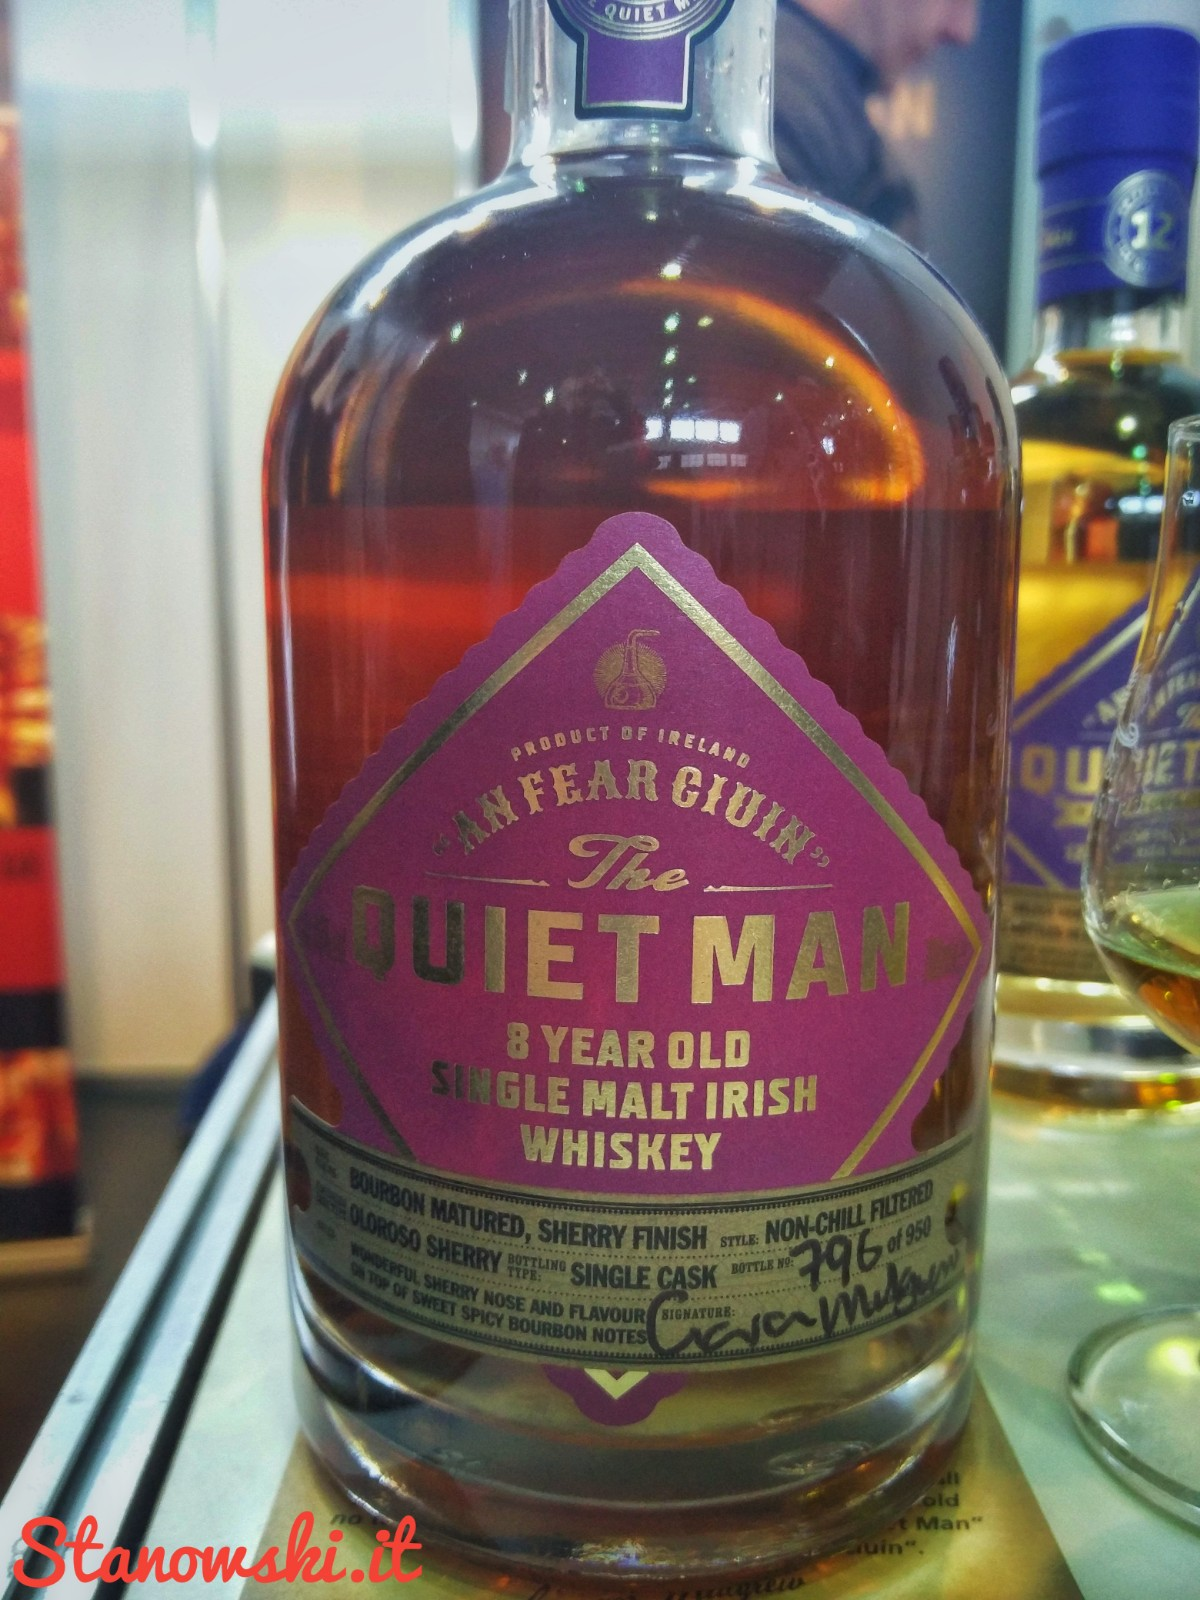 The Quiet Man 8 Year Old Sherry Cask Finish